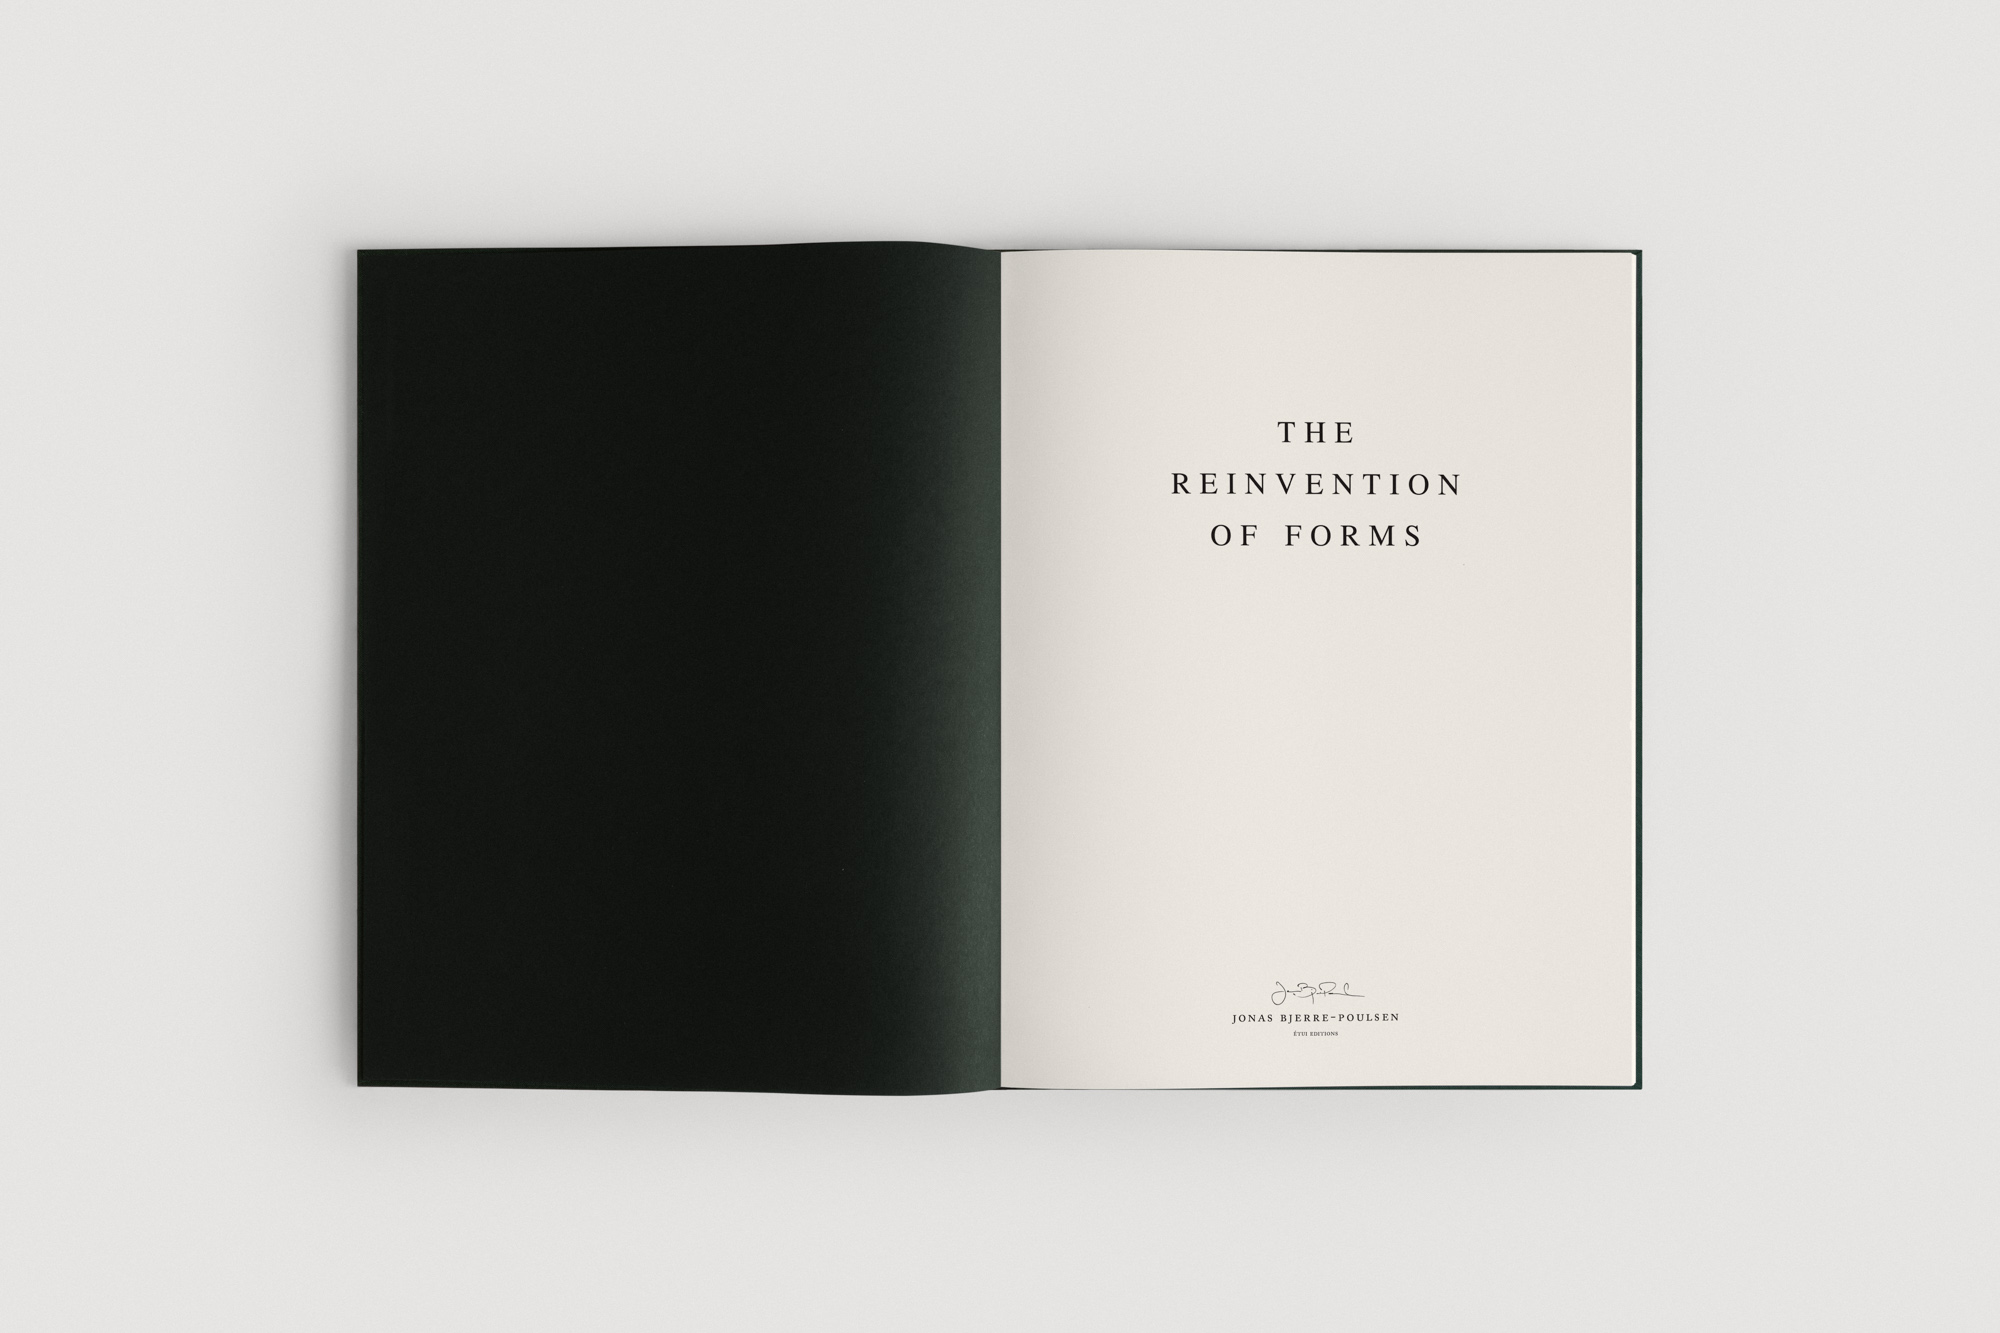 Jonas-Bjerre-Poulsen-The-Reinvention-of-Forms-Book-Packshots-Web-05